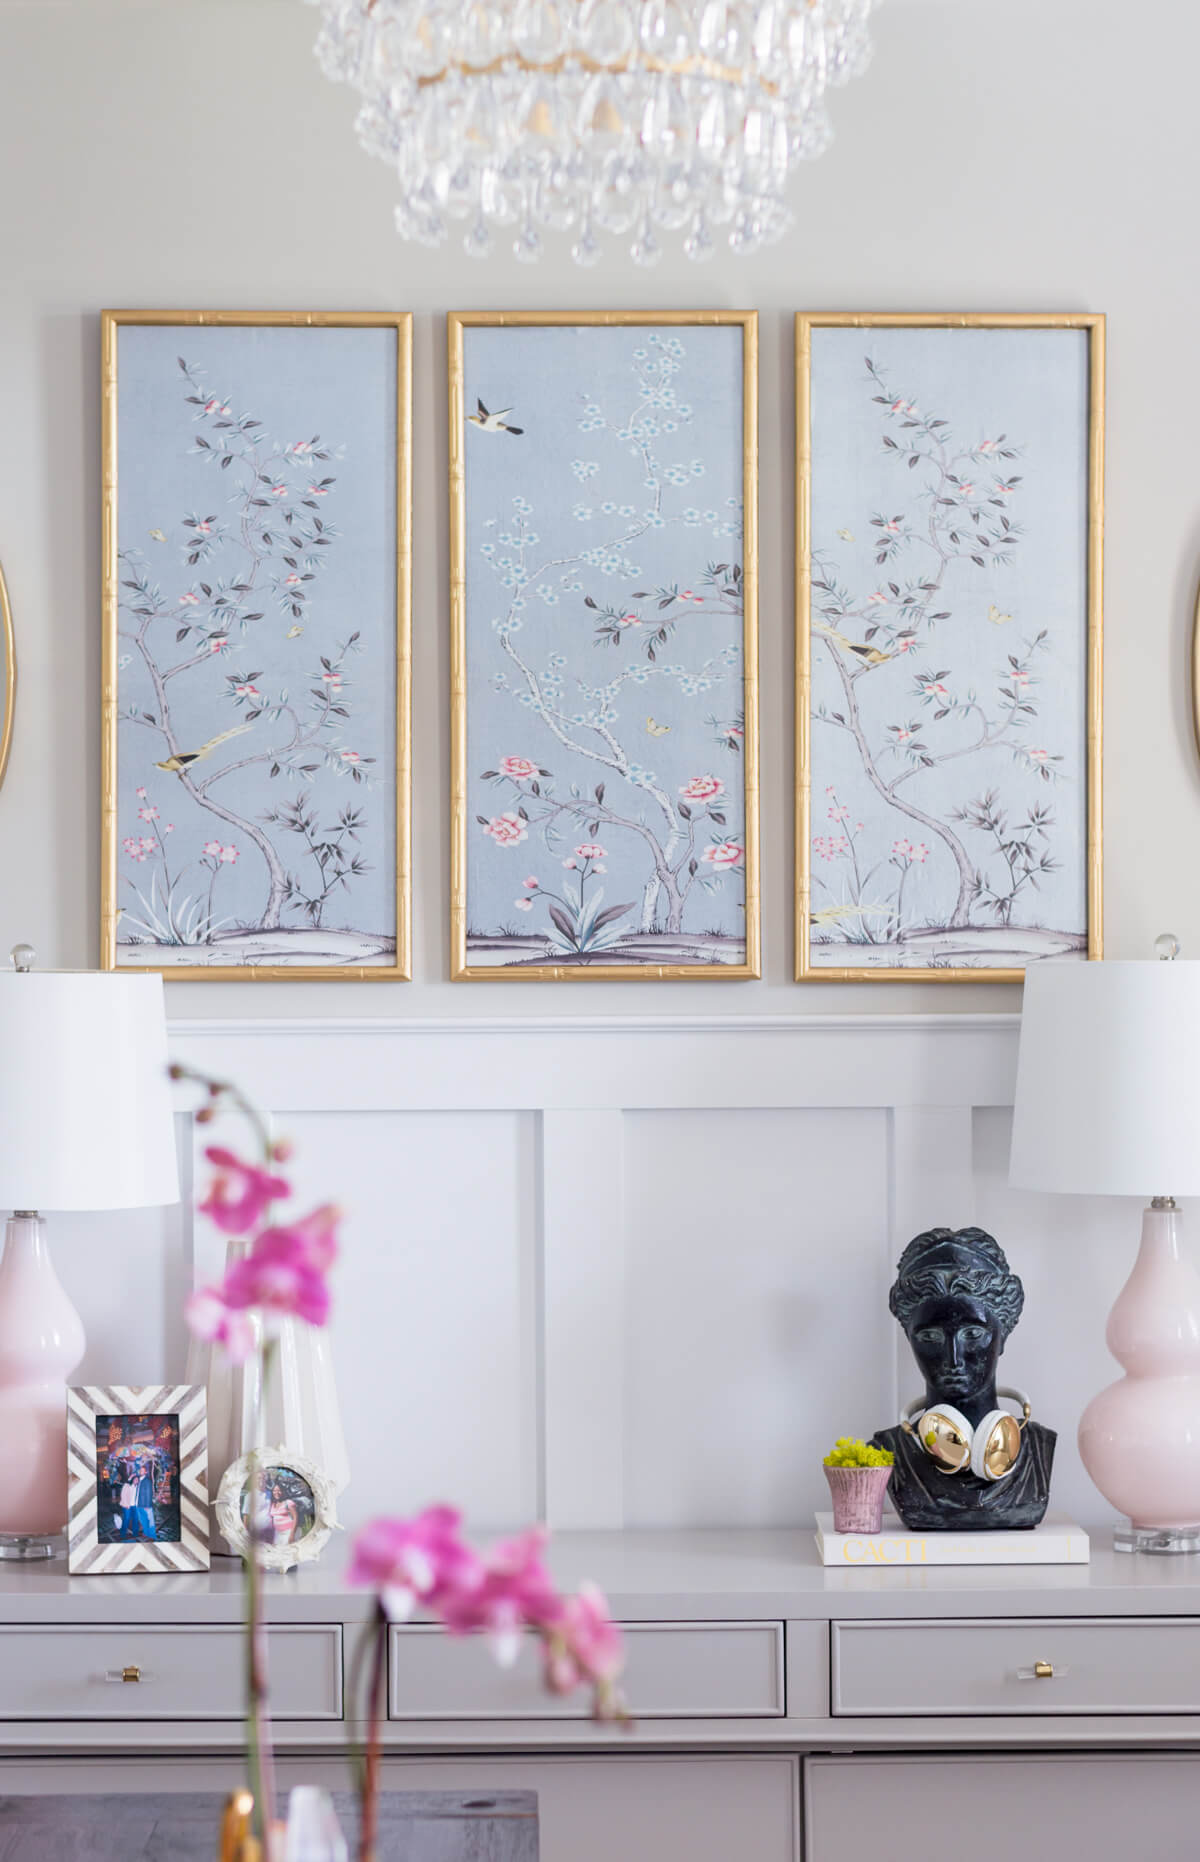 Chic and girly home office with chinoiserie panels, DIY Gold chandelier, pink lamps, vintage bust.